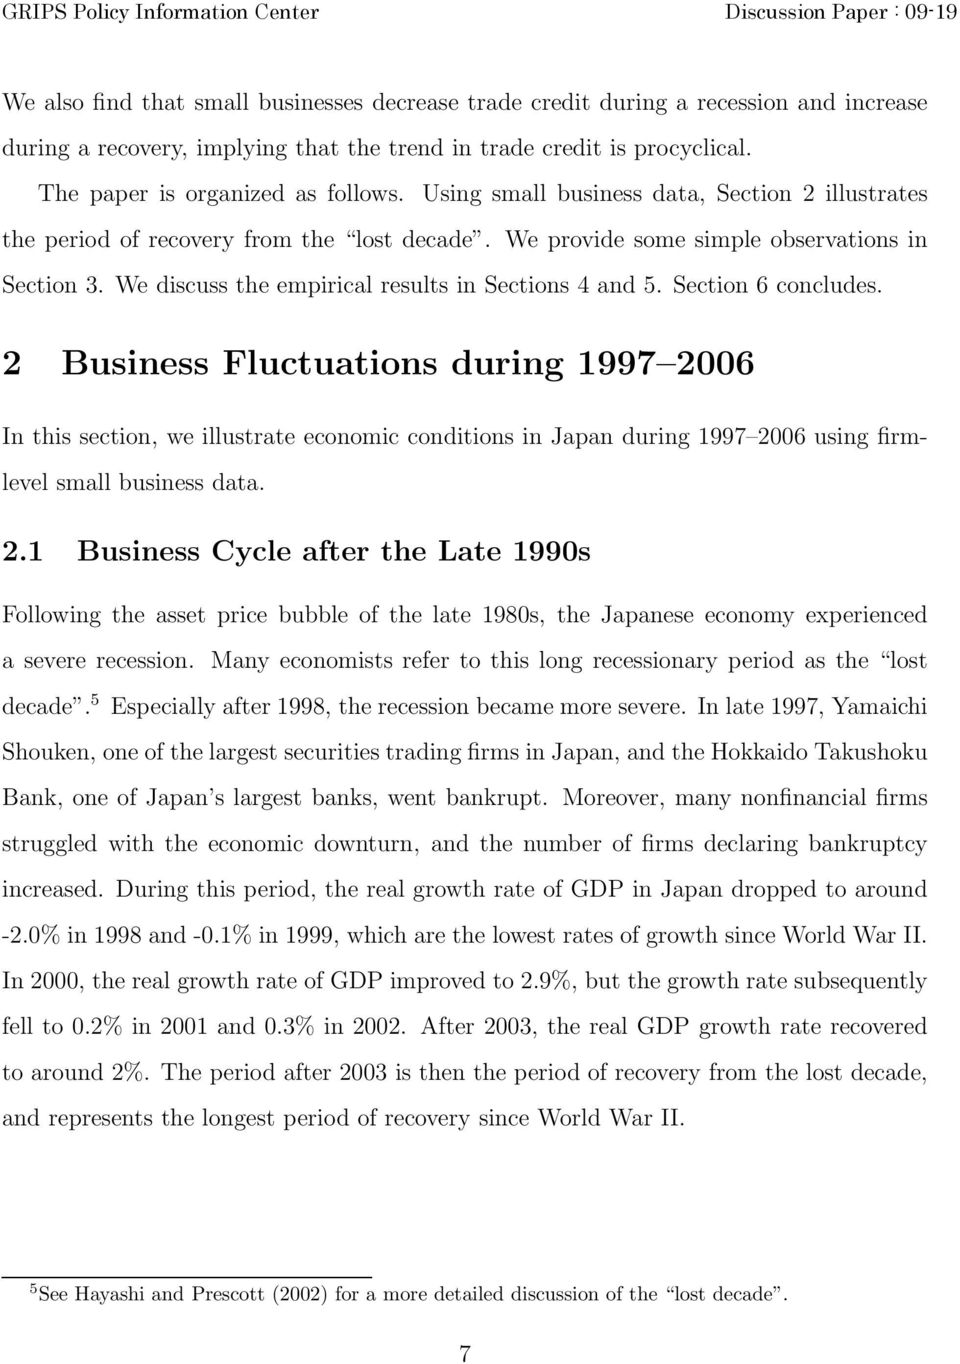 Section 6 concludes. 2 Business Fluctuations during 1997 2006 In this section, we illustrate economic conditions in Japan during 1997 2006 using firmlevel small business data. 2.1 Business Cycle after the Late 1990s Following the asset price bubble of the late 1980s, the Japanese economy experienced a severe recession.